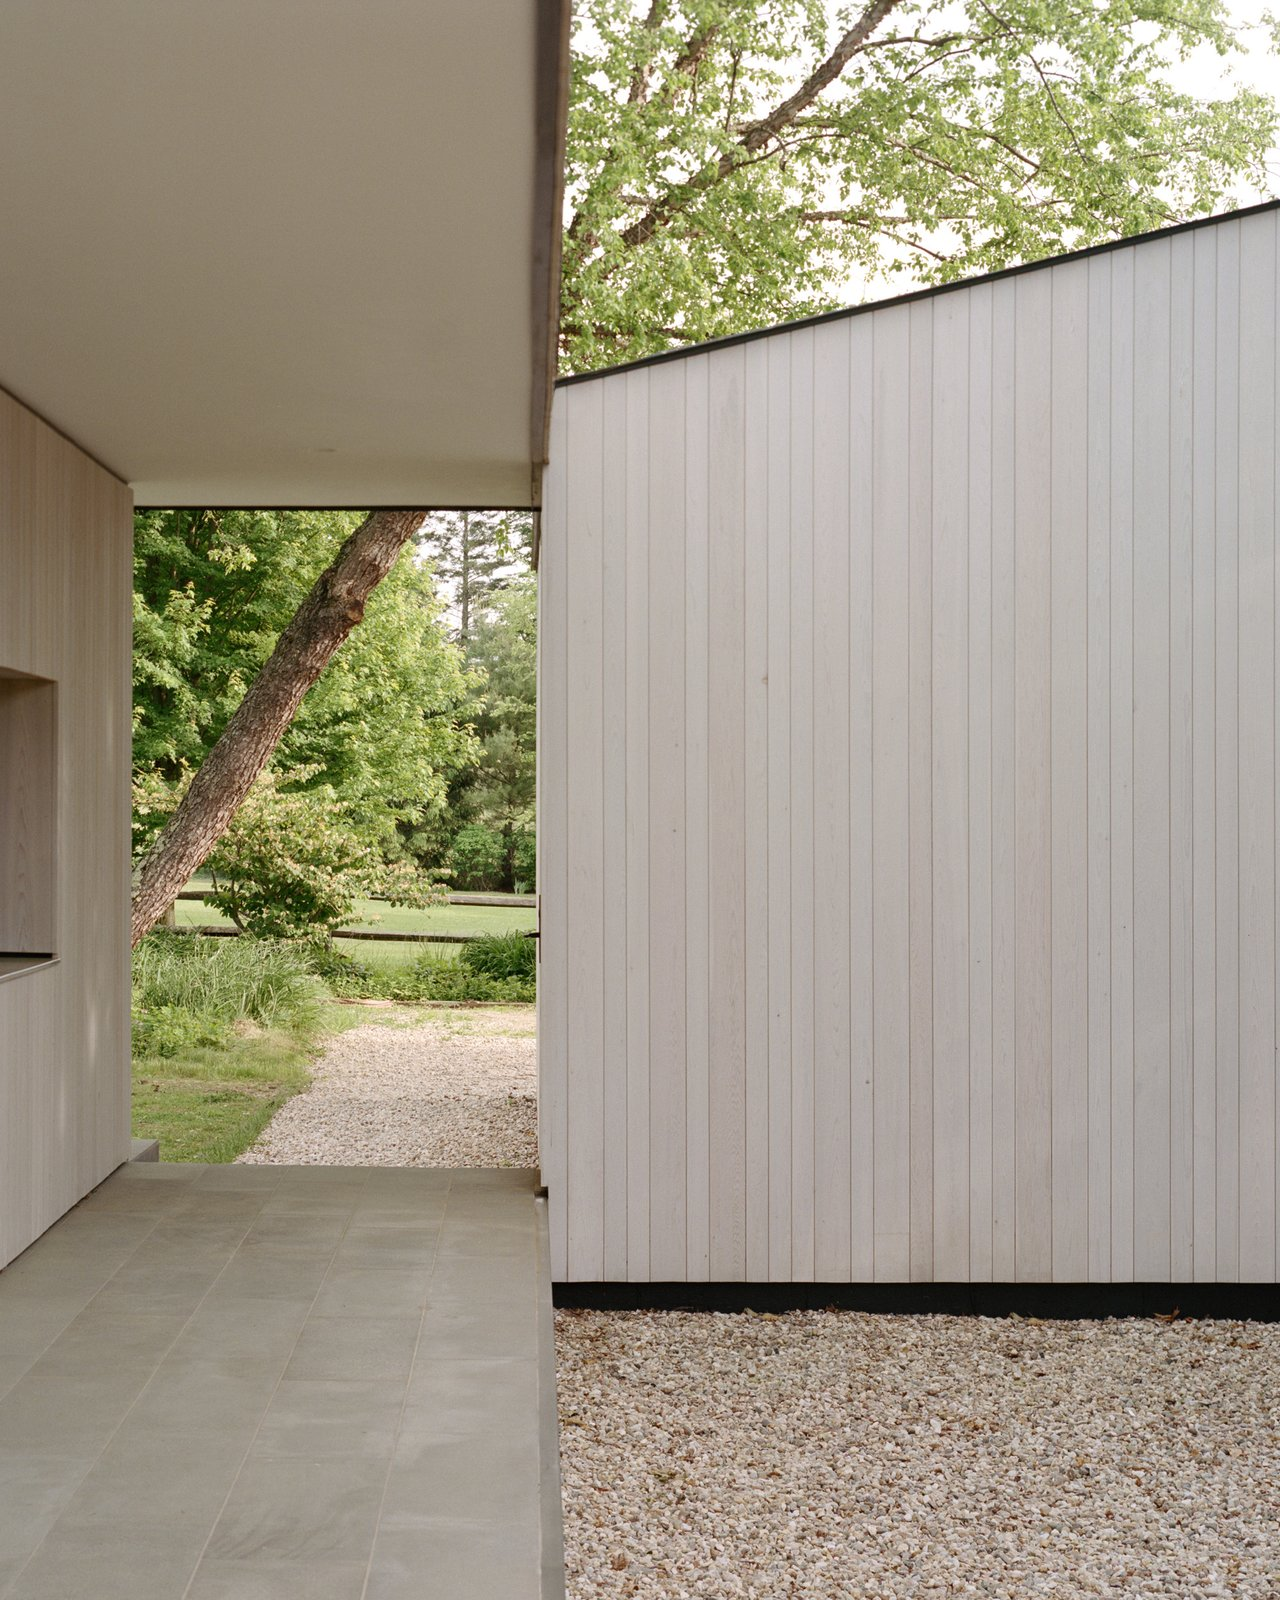 Sheffield residence by Vincent Appel / Of Possible exterior and walkway